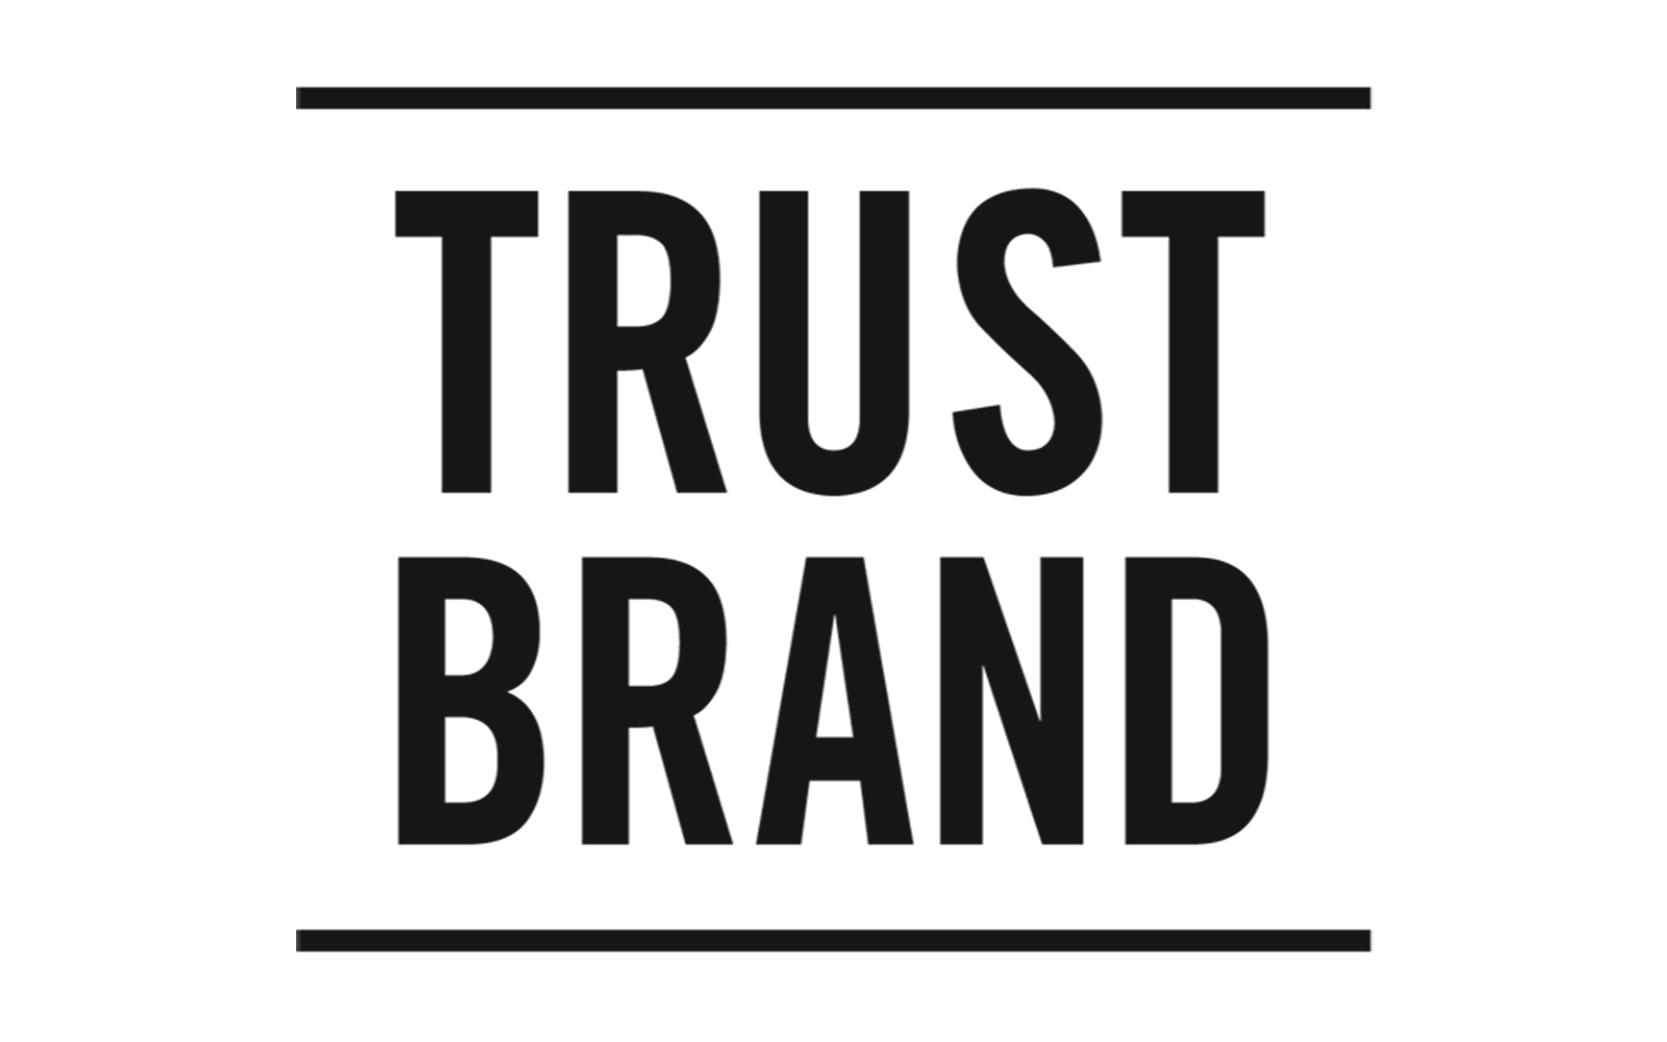 Trustbrand Global Sweden ABs logotyp